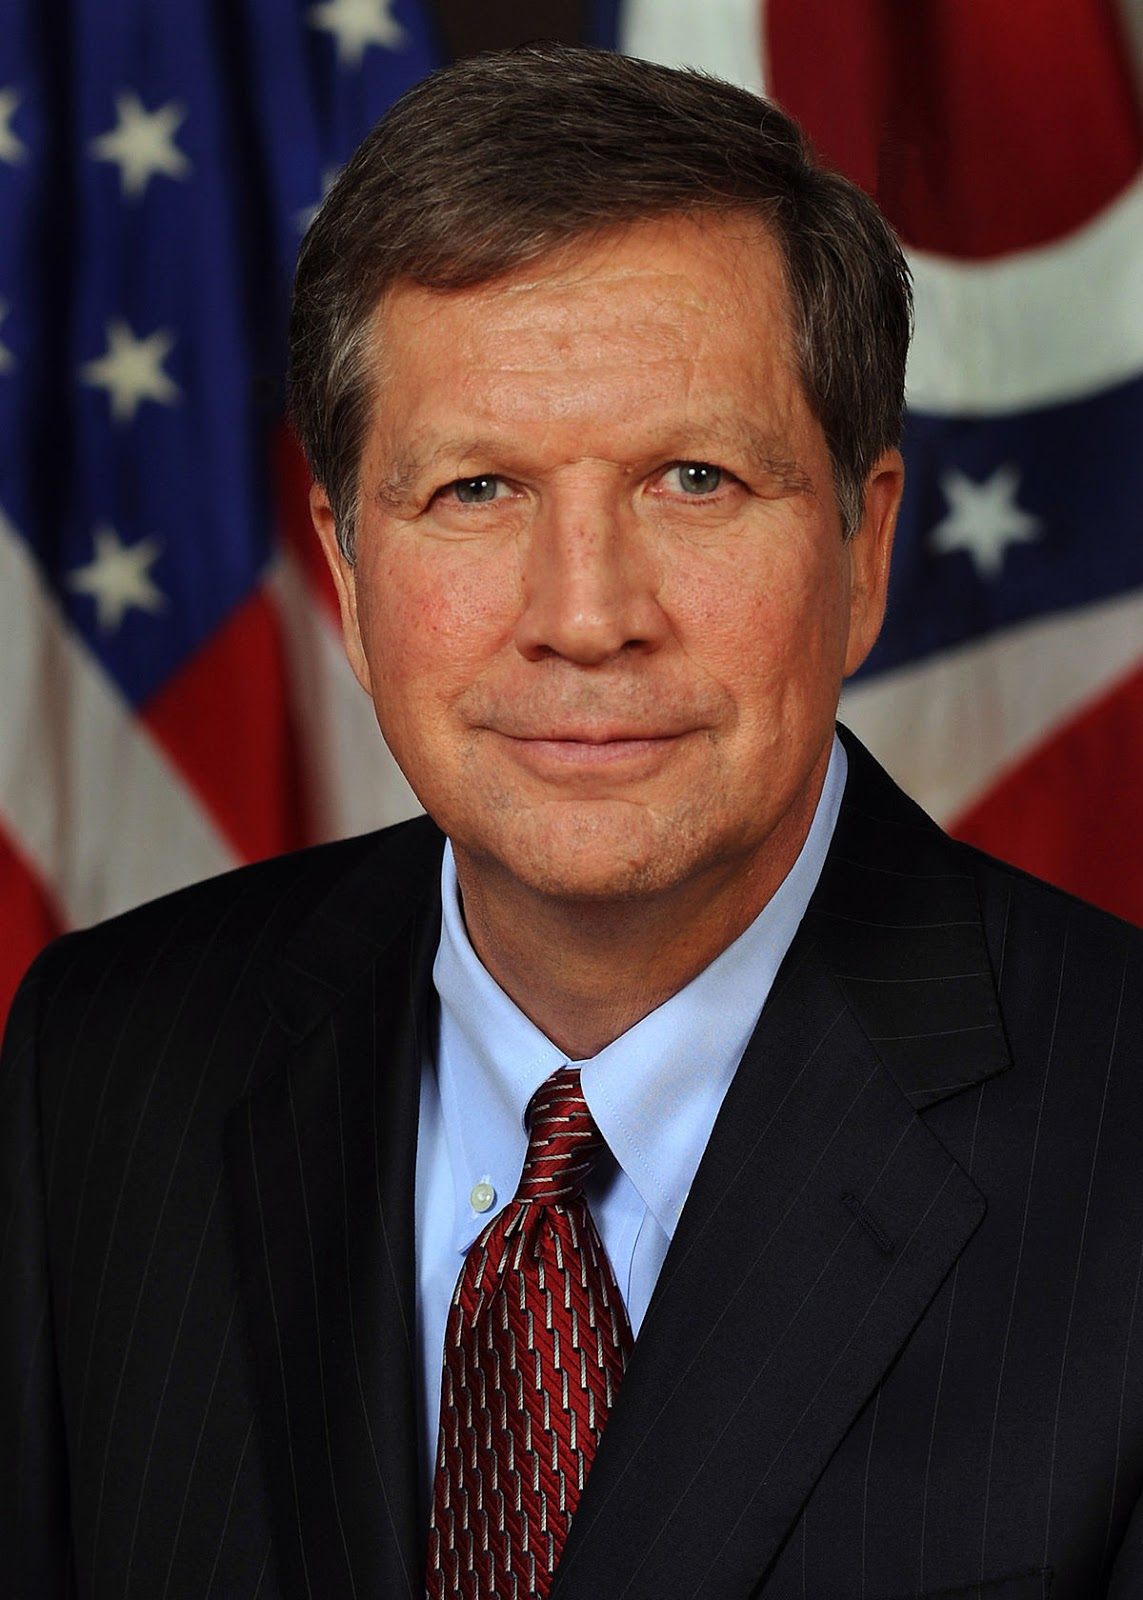 John Kasich Bio, Wiki, Net Worth, Political Career - Everything You Need To Know About Former Ohio Governor